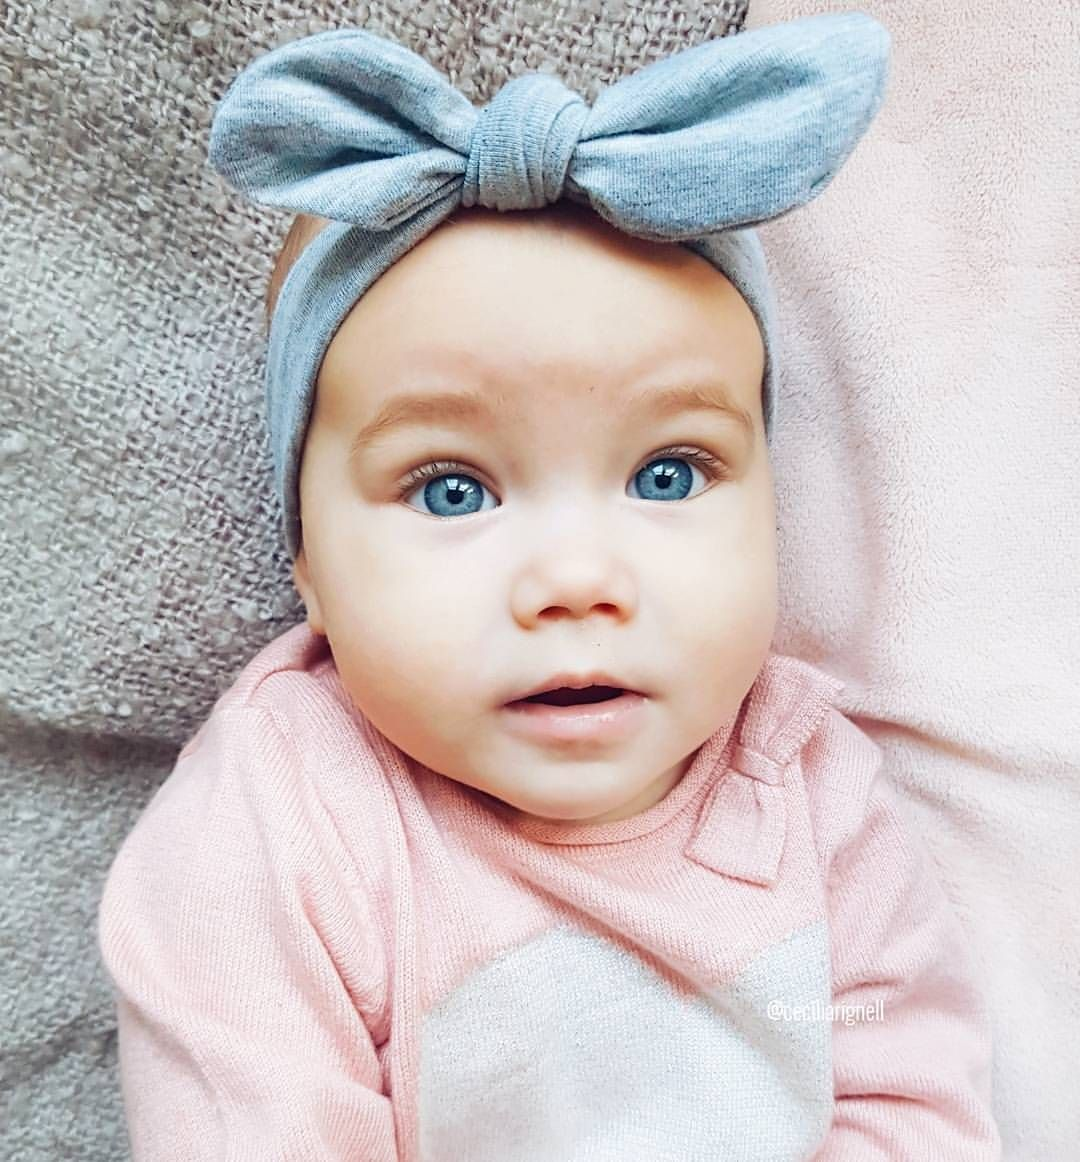 Ava Beautiful Baby Girl With Bright Blue Eyes Baby Girl Blue